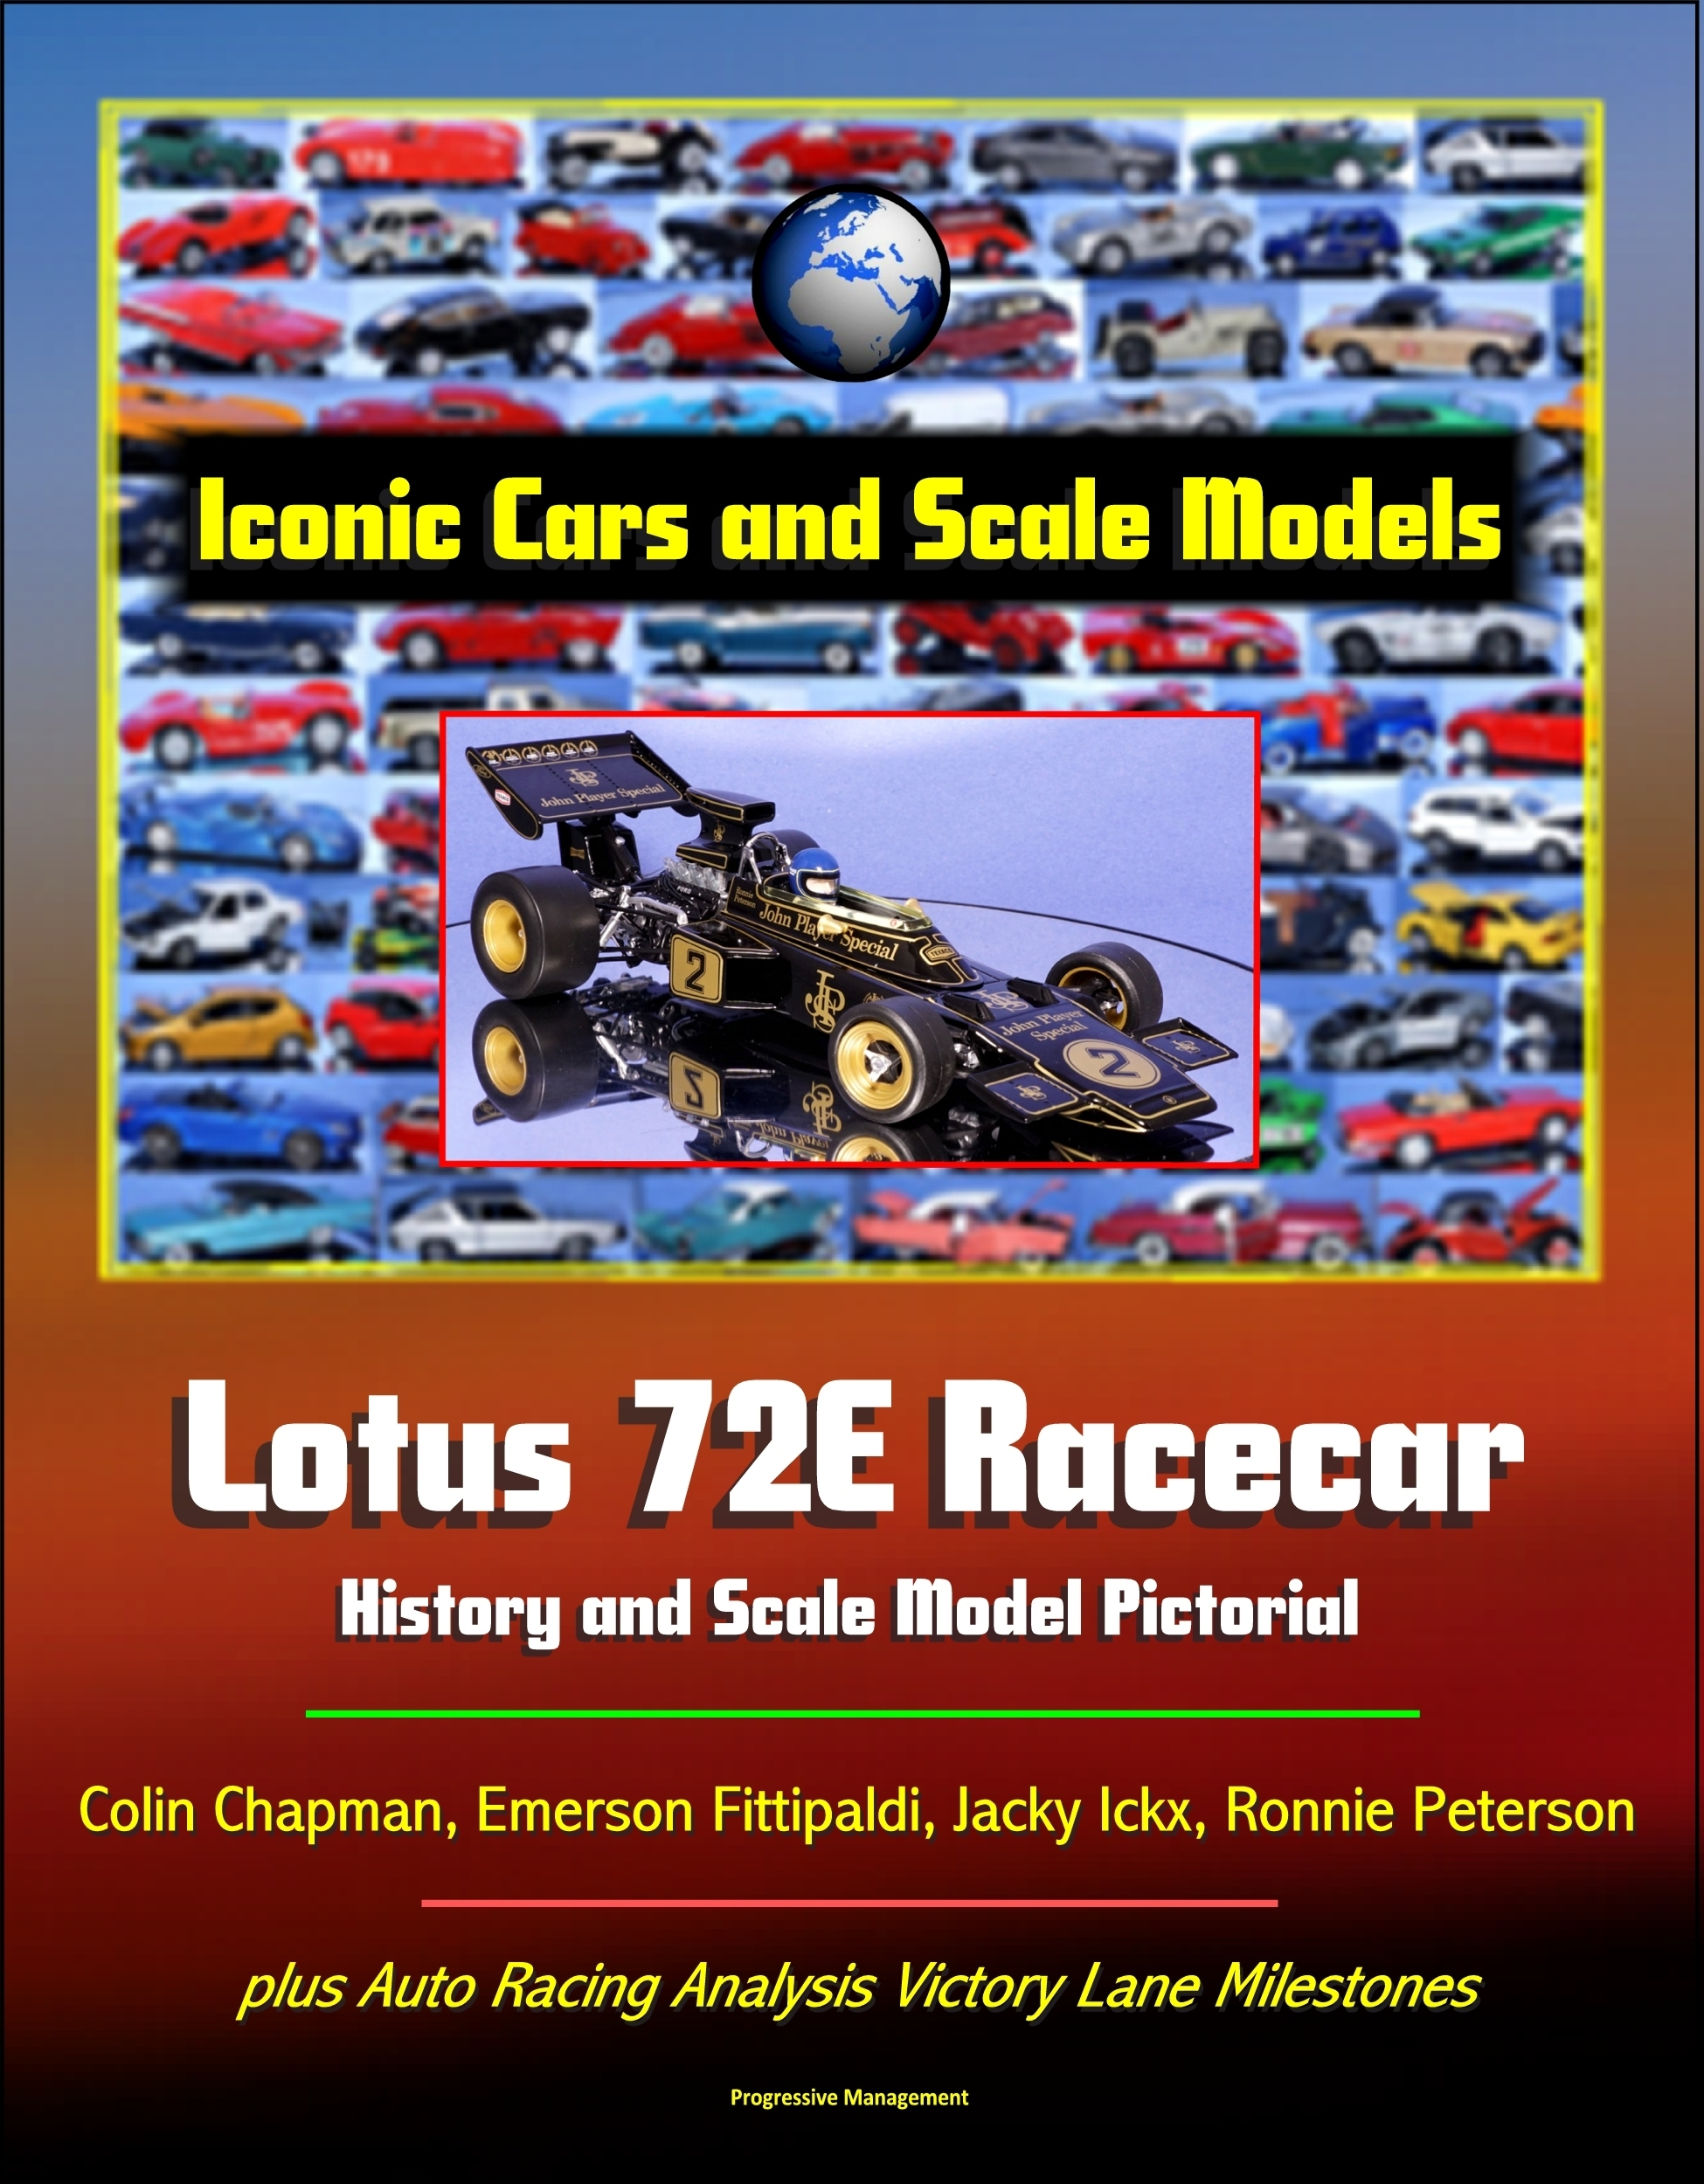 Iconic Cars and Scale Models: Lotus 72E Racecar History and Scale Model Pictorial, Colin Chapman, Emerson Fittipaldi, Jacky Ickx, Ronnie Peterson, plus Auto Racing Analysis Victory Lane Milestones